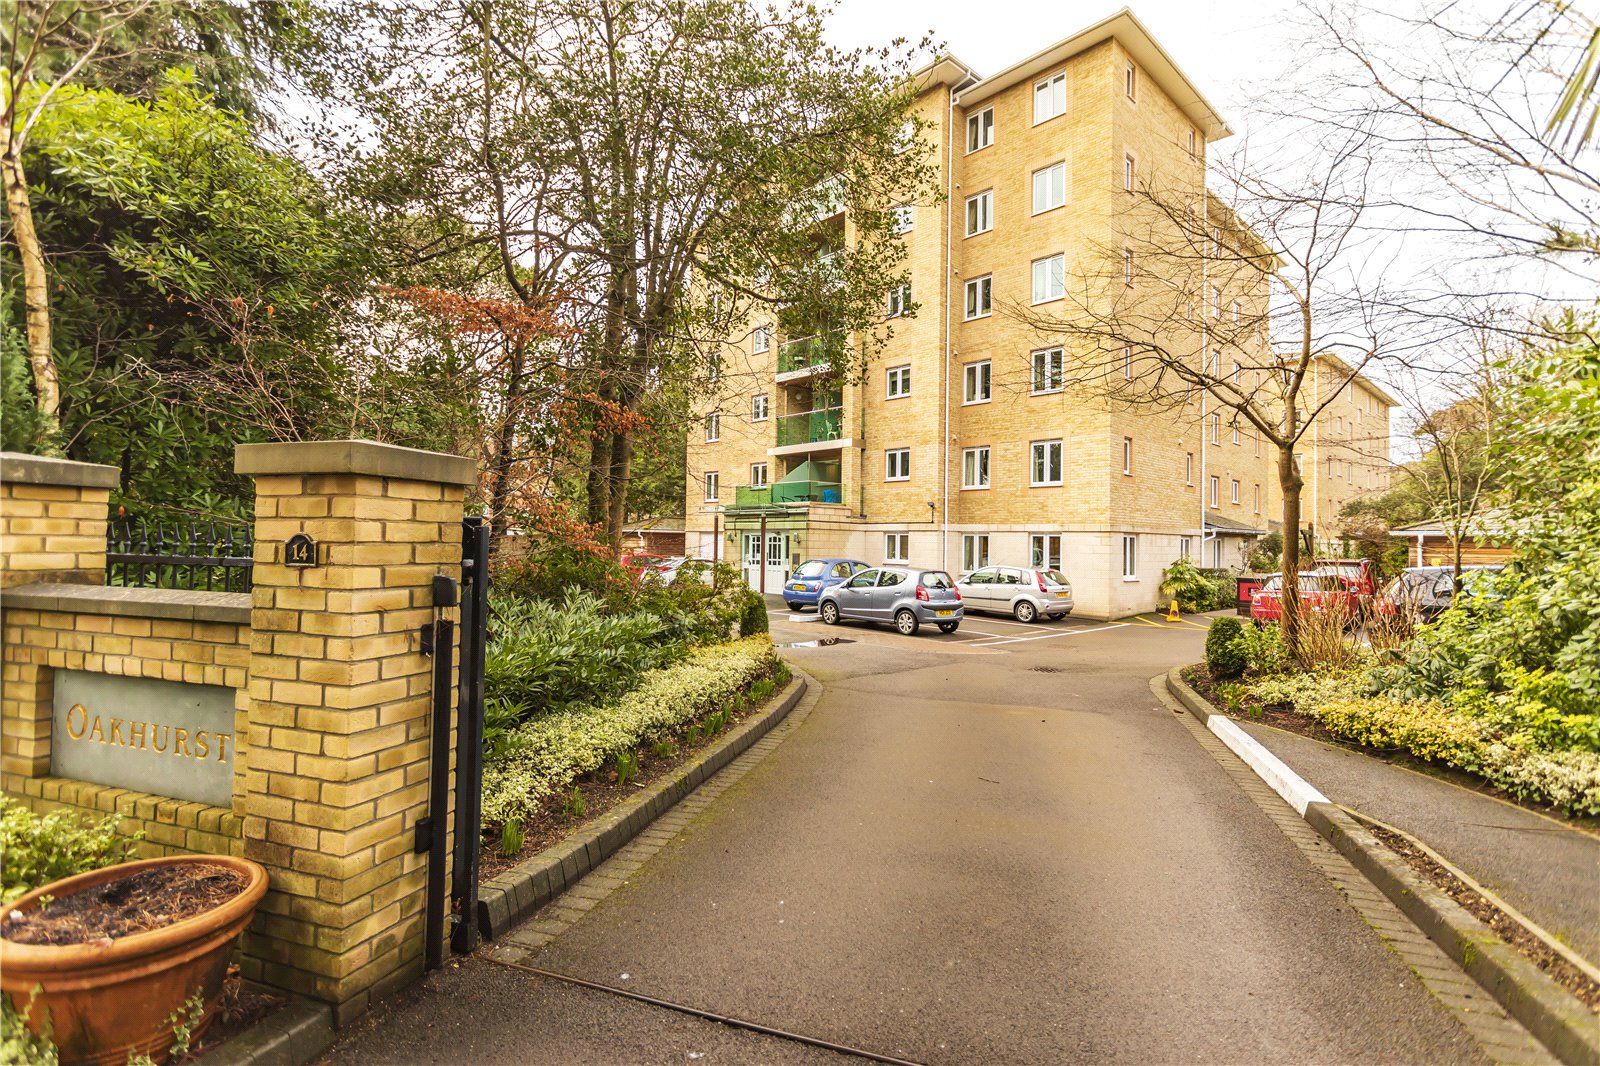 2 bed apartment for sale in Poole - Property Image 1